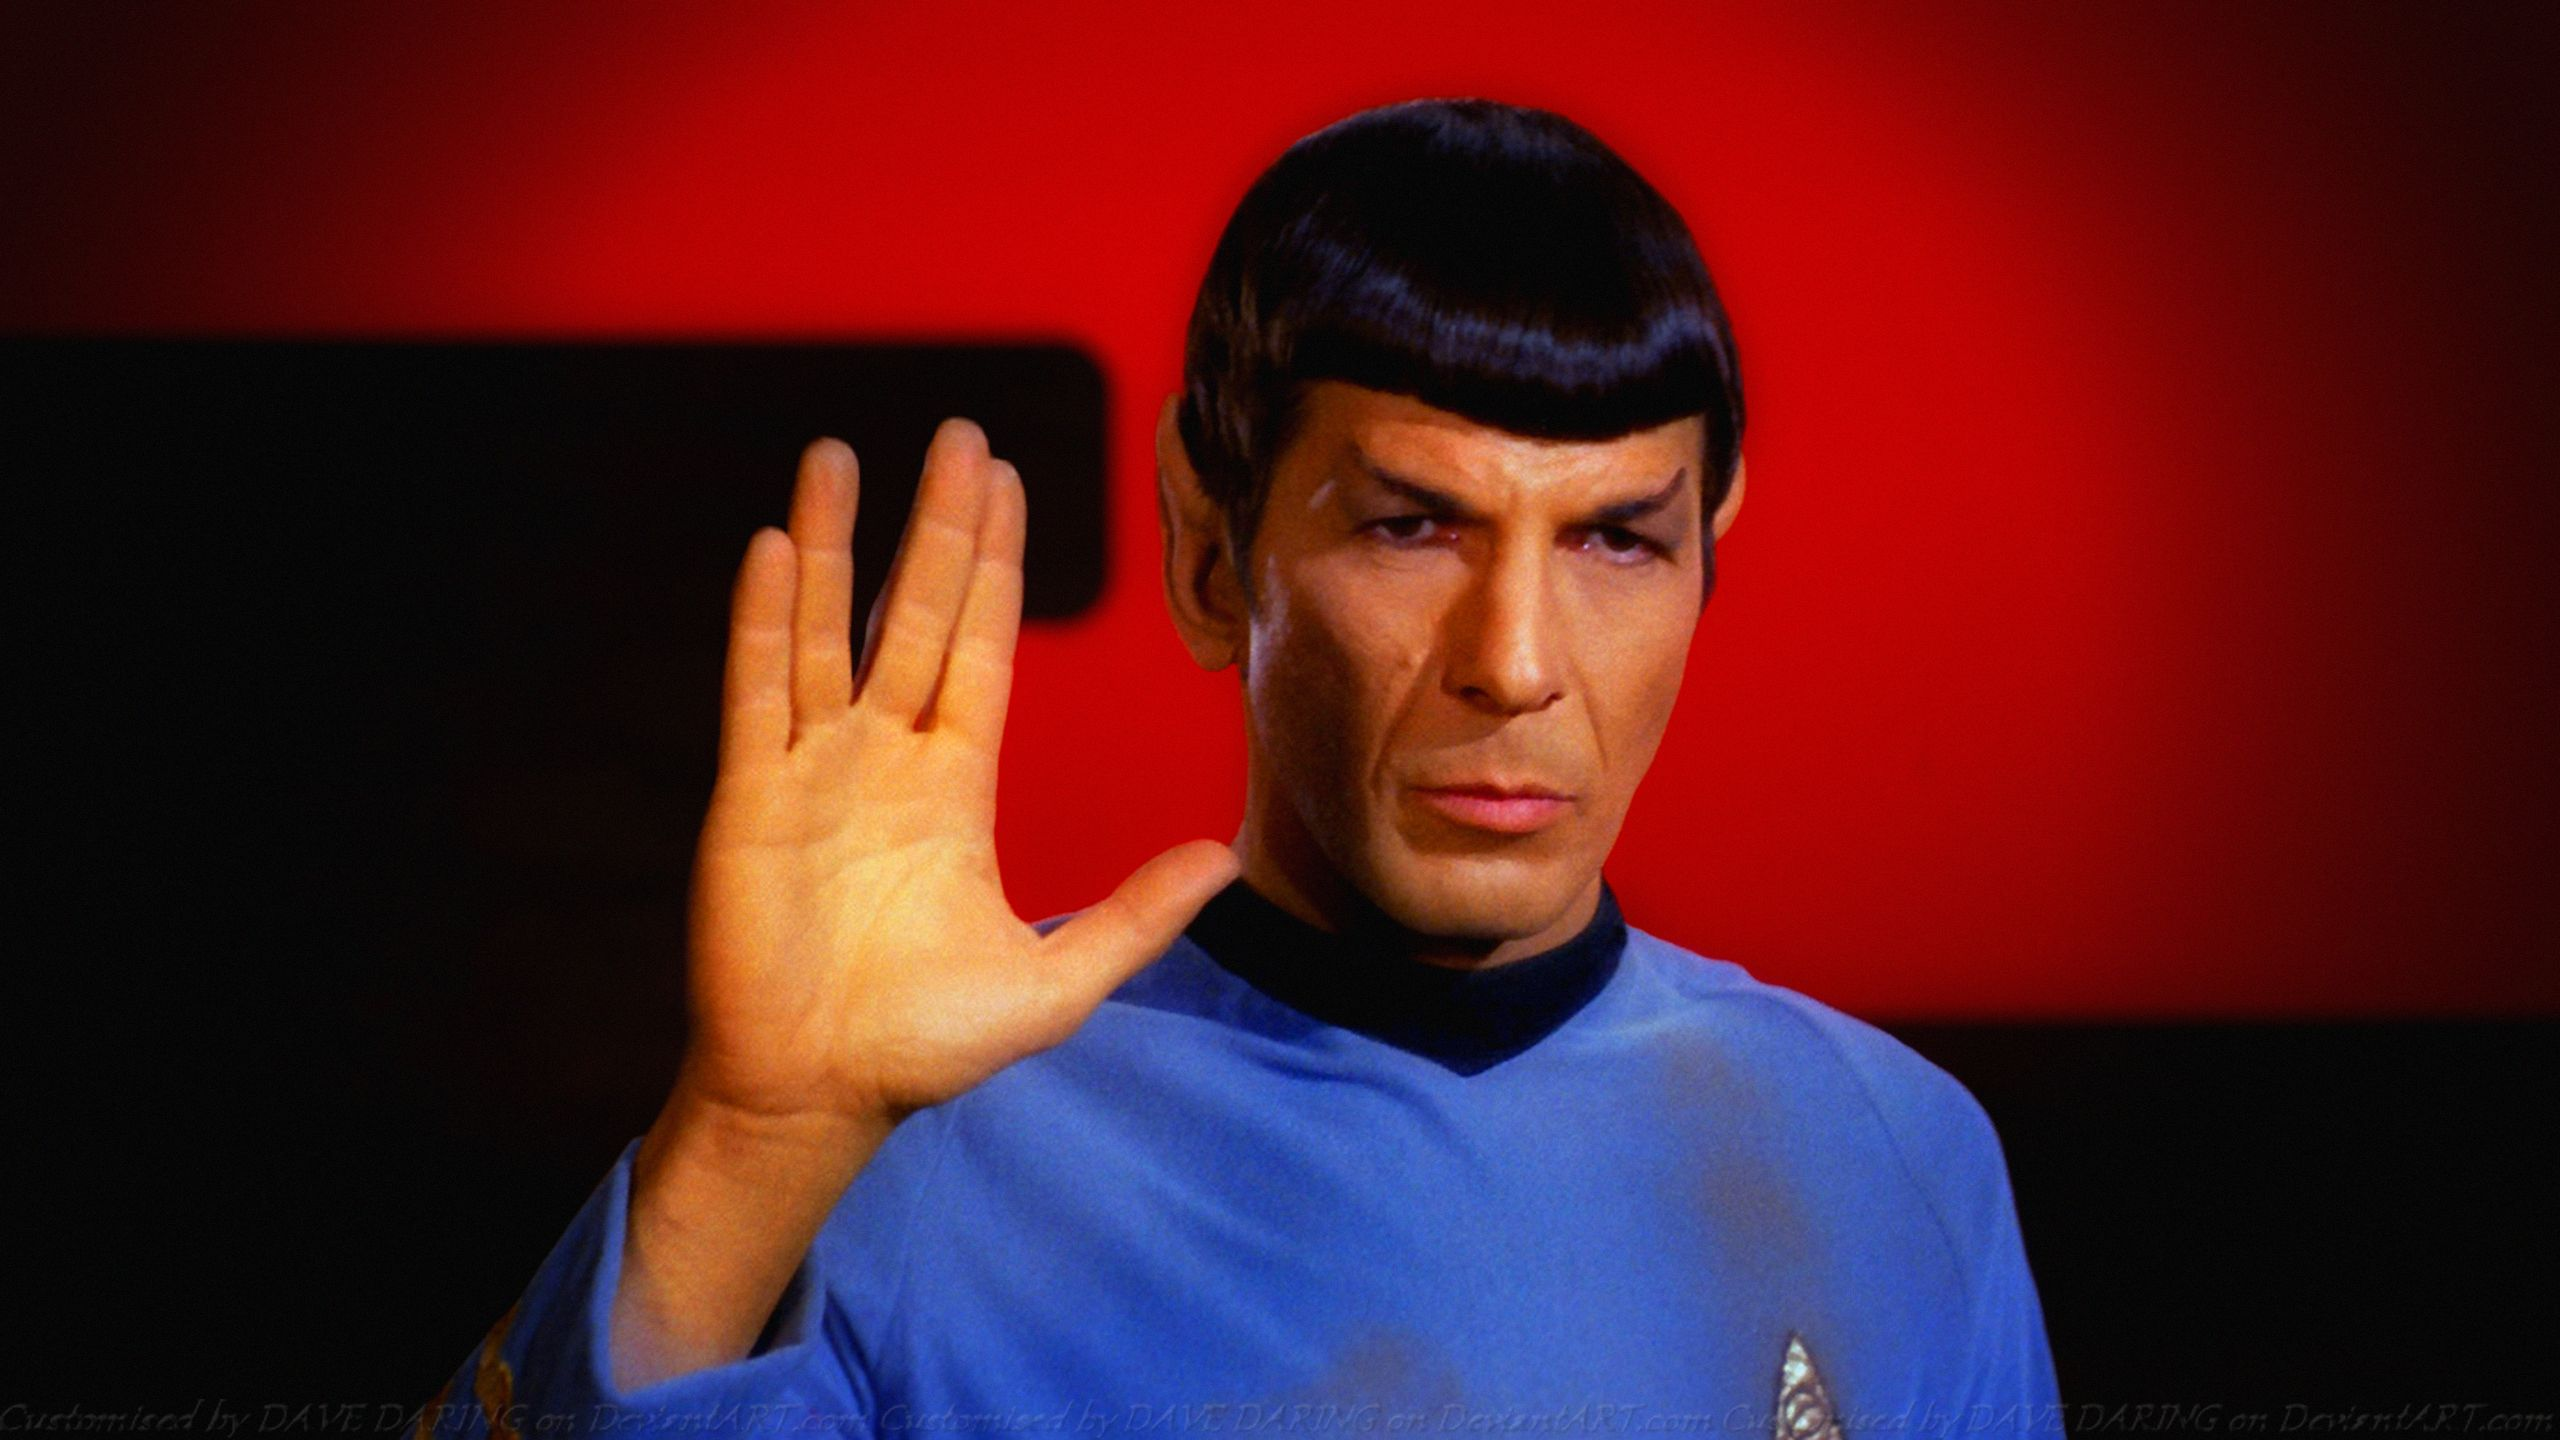 Spock Quotes Live Long And Prosper: Leonard Nimoy Spock VI By Dave-Daring On DeviantArt